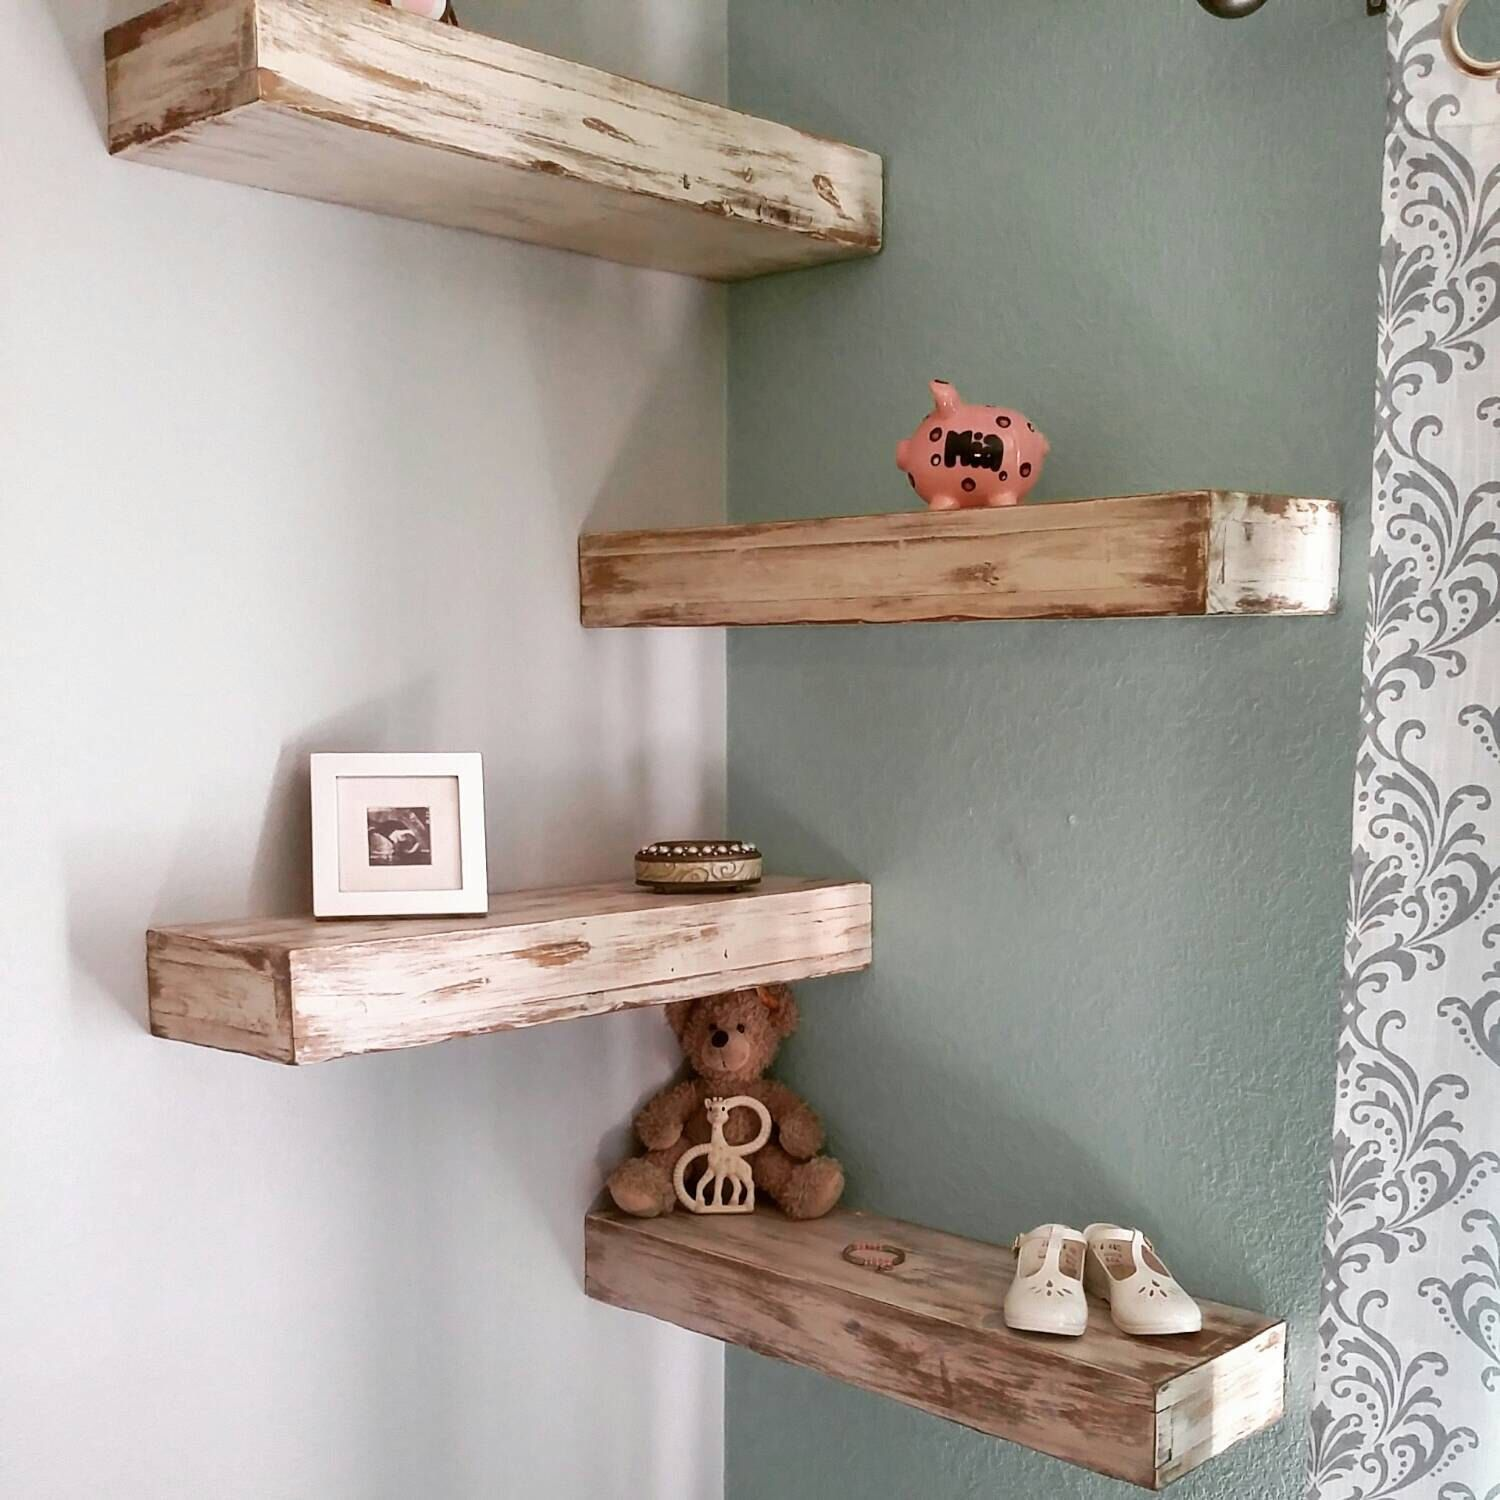 Pin By Mountain Laurel Handrails On Bedroom Decor Wood Corner Shelves Reclaimed Wood Floating Shelves Wood Floating Shelves